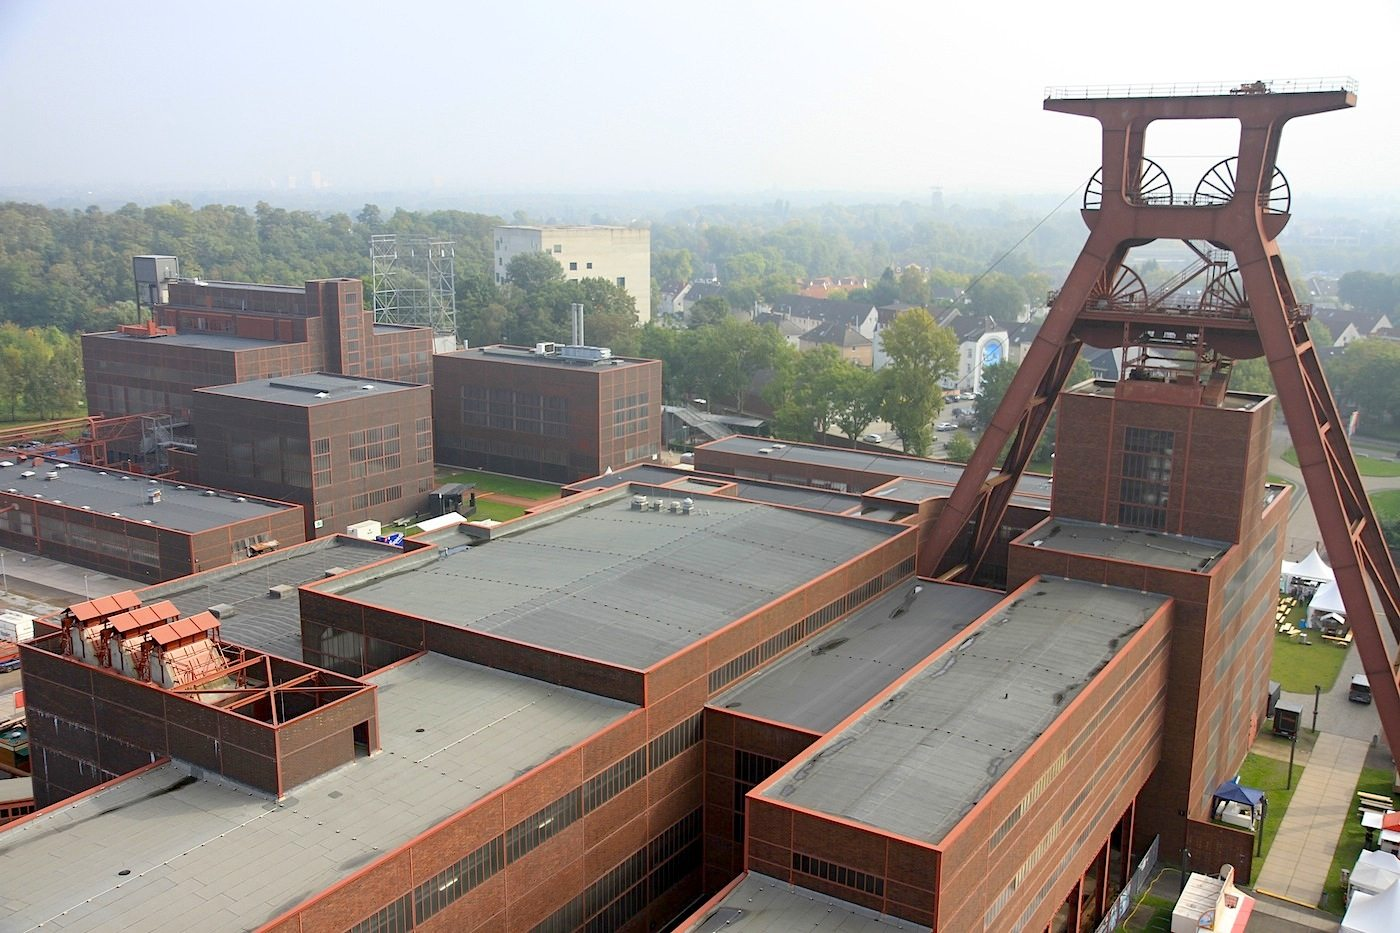 Zeche Zollverein. The symmetrical arrangement of buildings is still impressive today: the facilities designed down to the last detail are a completely preserved synthesis of the arts.